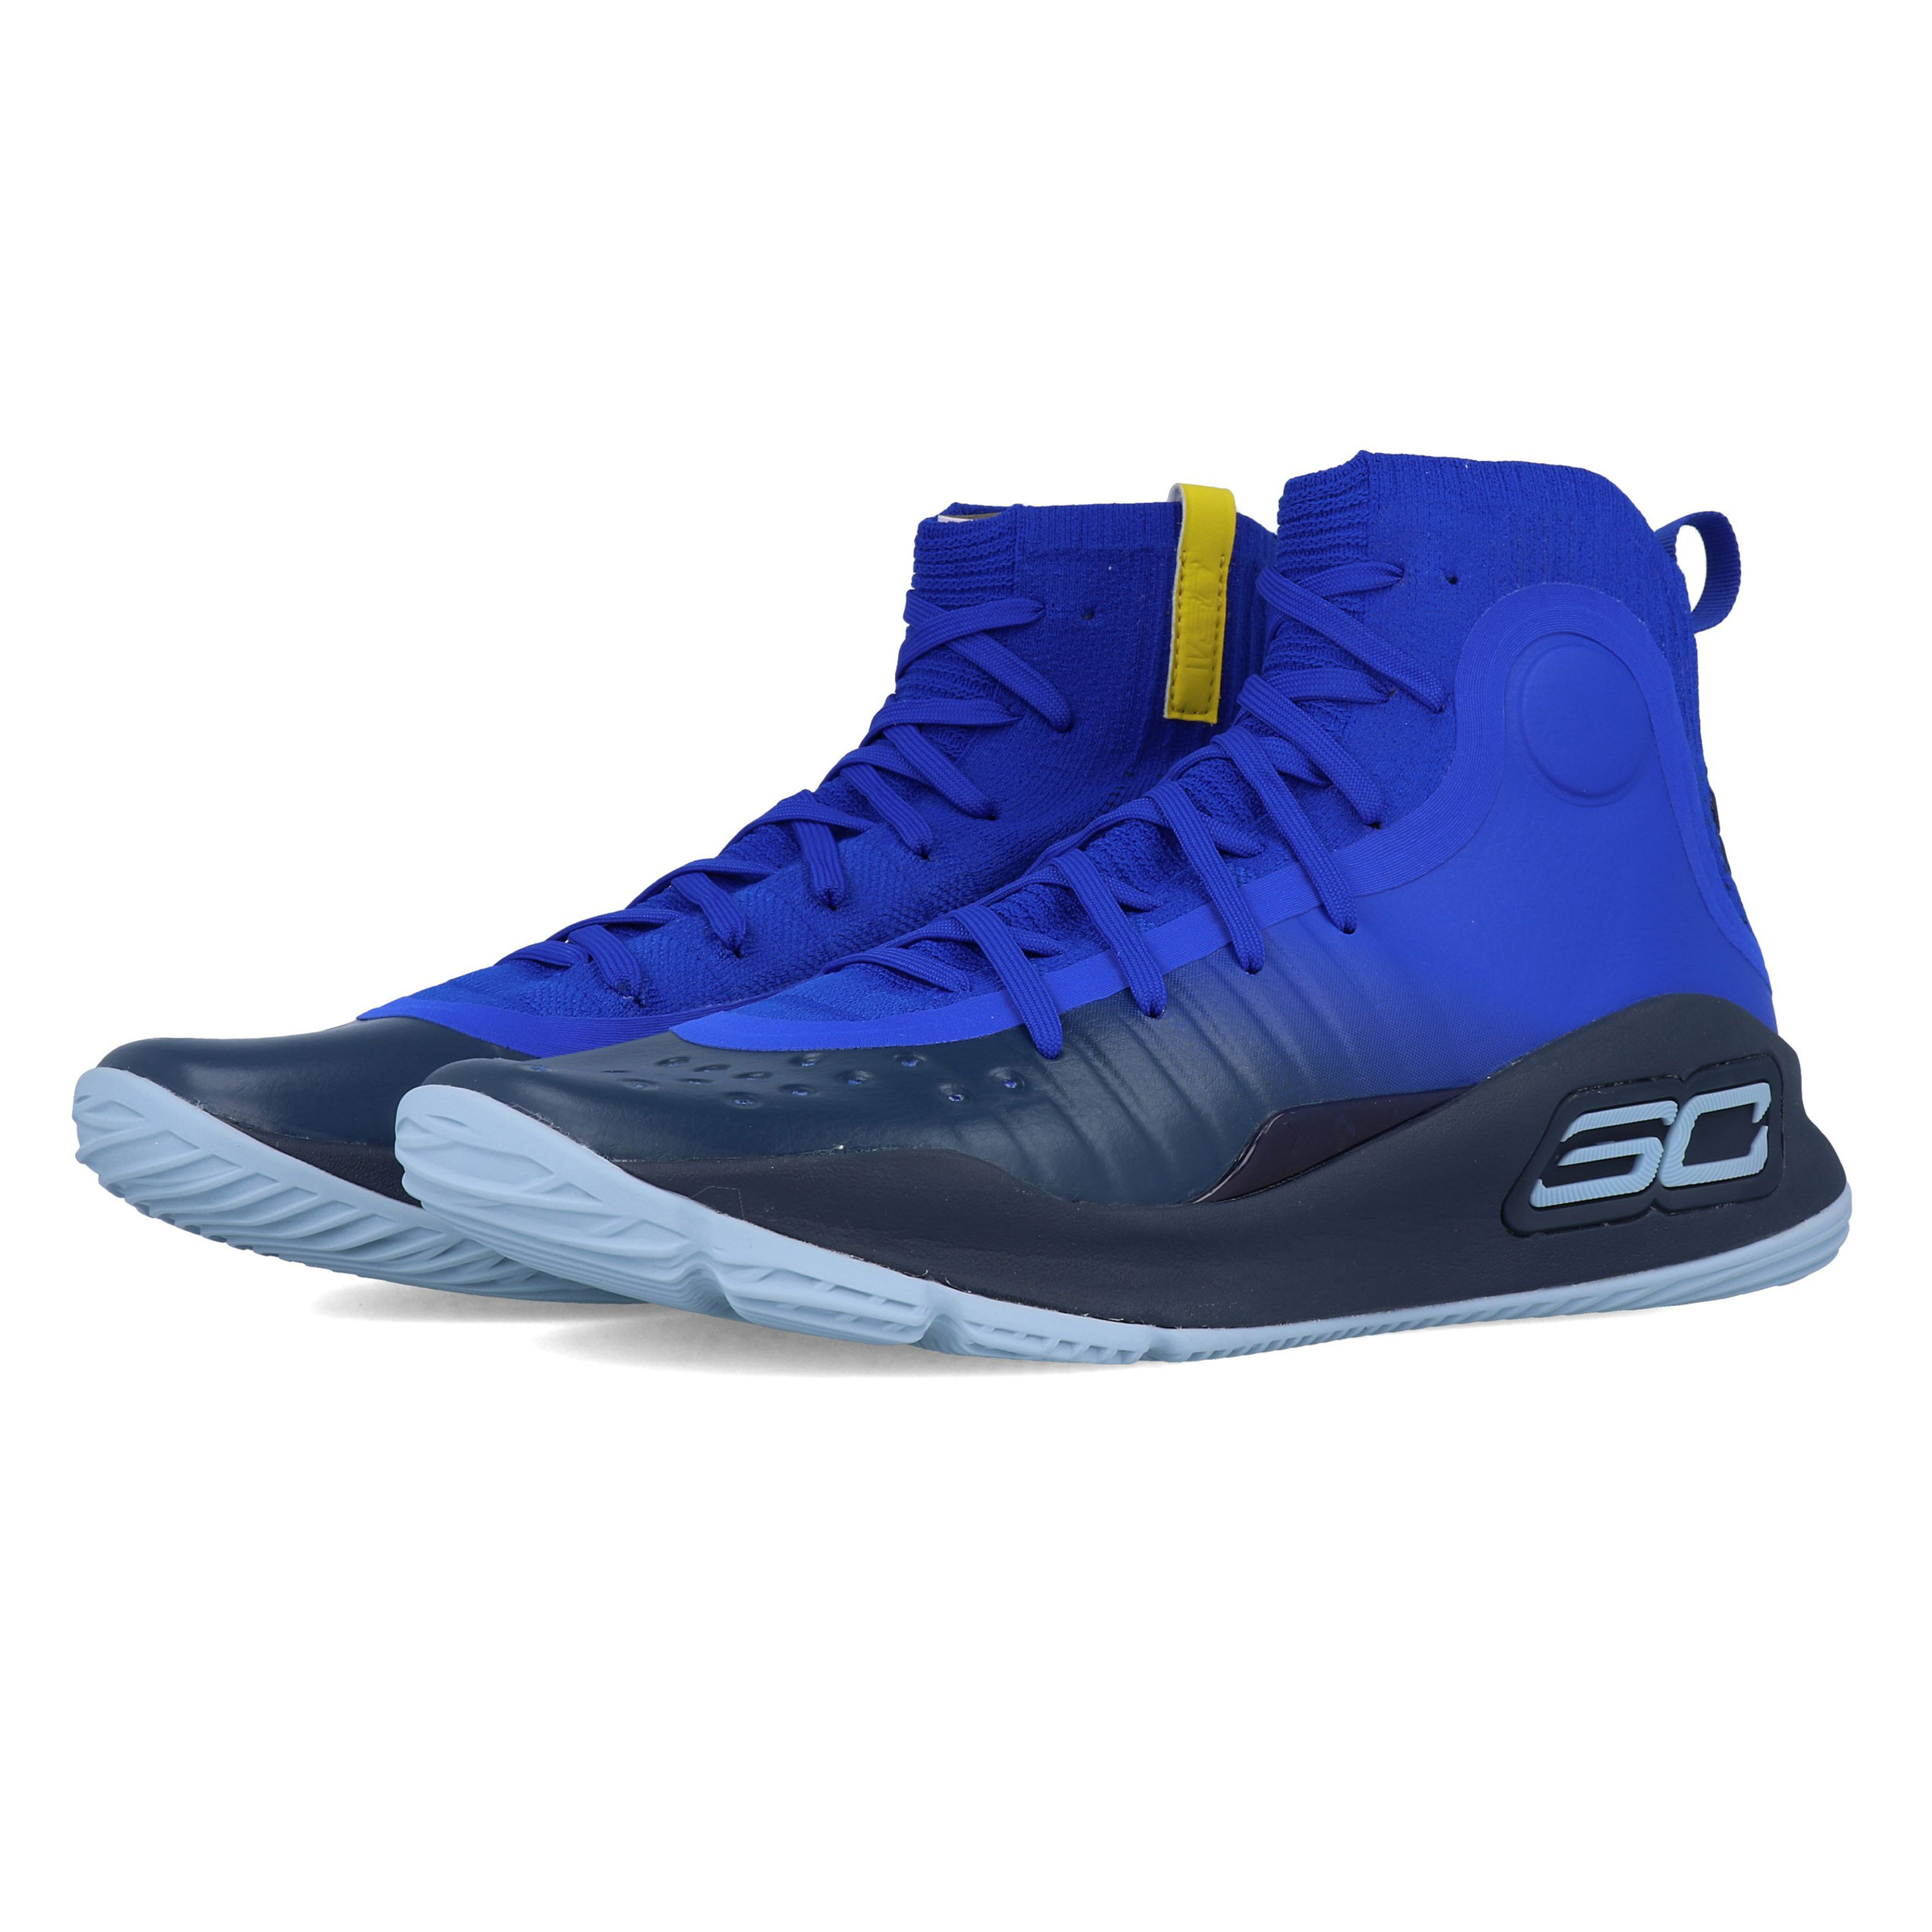 0c85ca8a84e5 Under Armour Mens Curry 4 Basketball Shoes Blue Sports Breathable  Lightweight